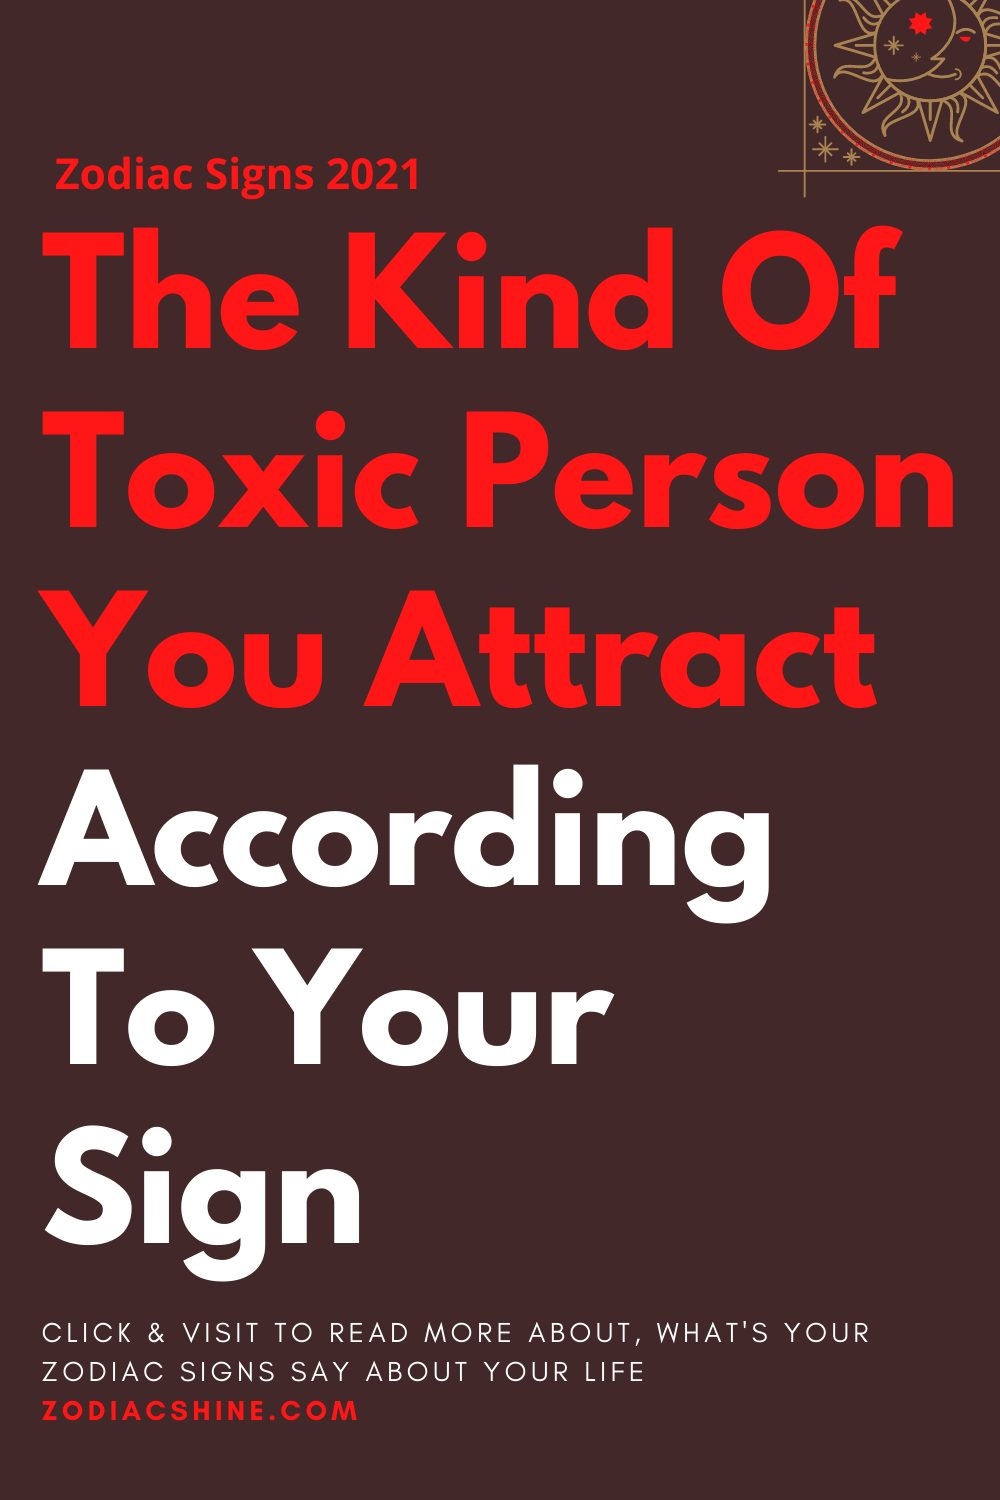 The Kind Of Toxic Person You Attract According To Your Sign